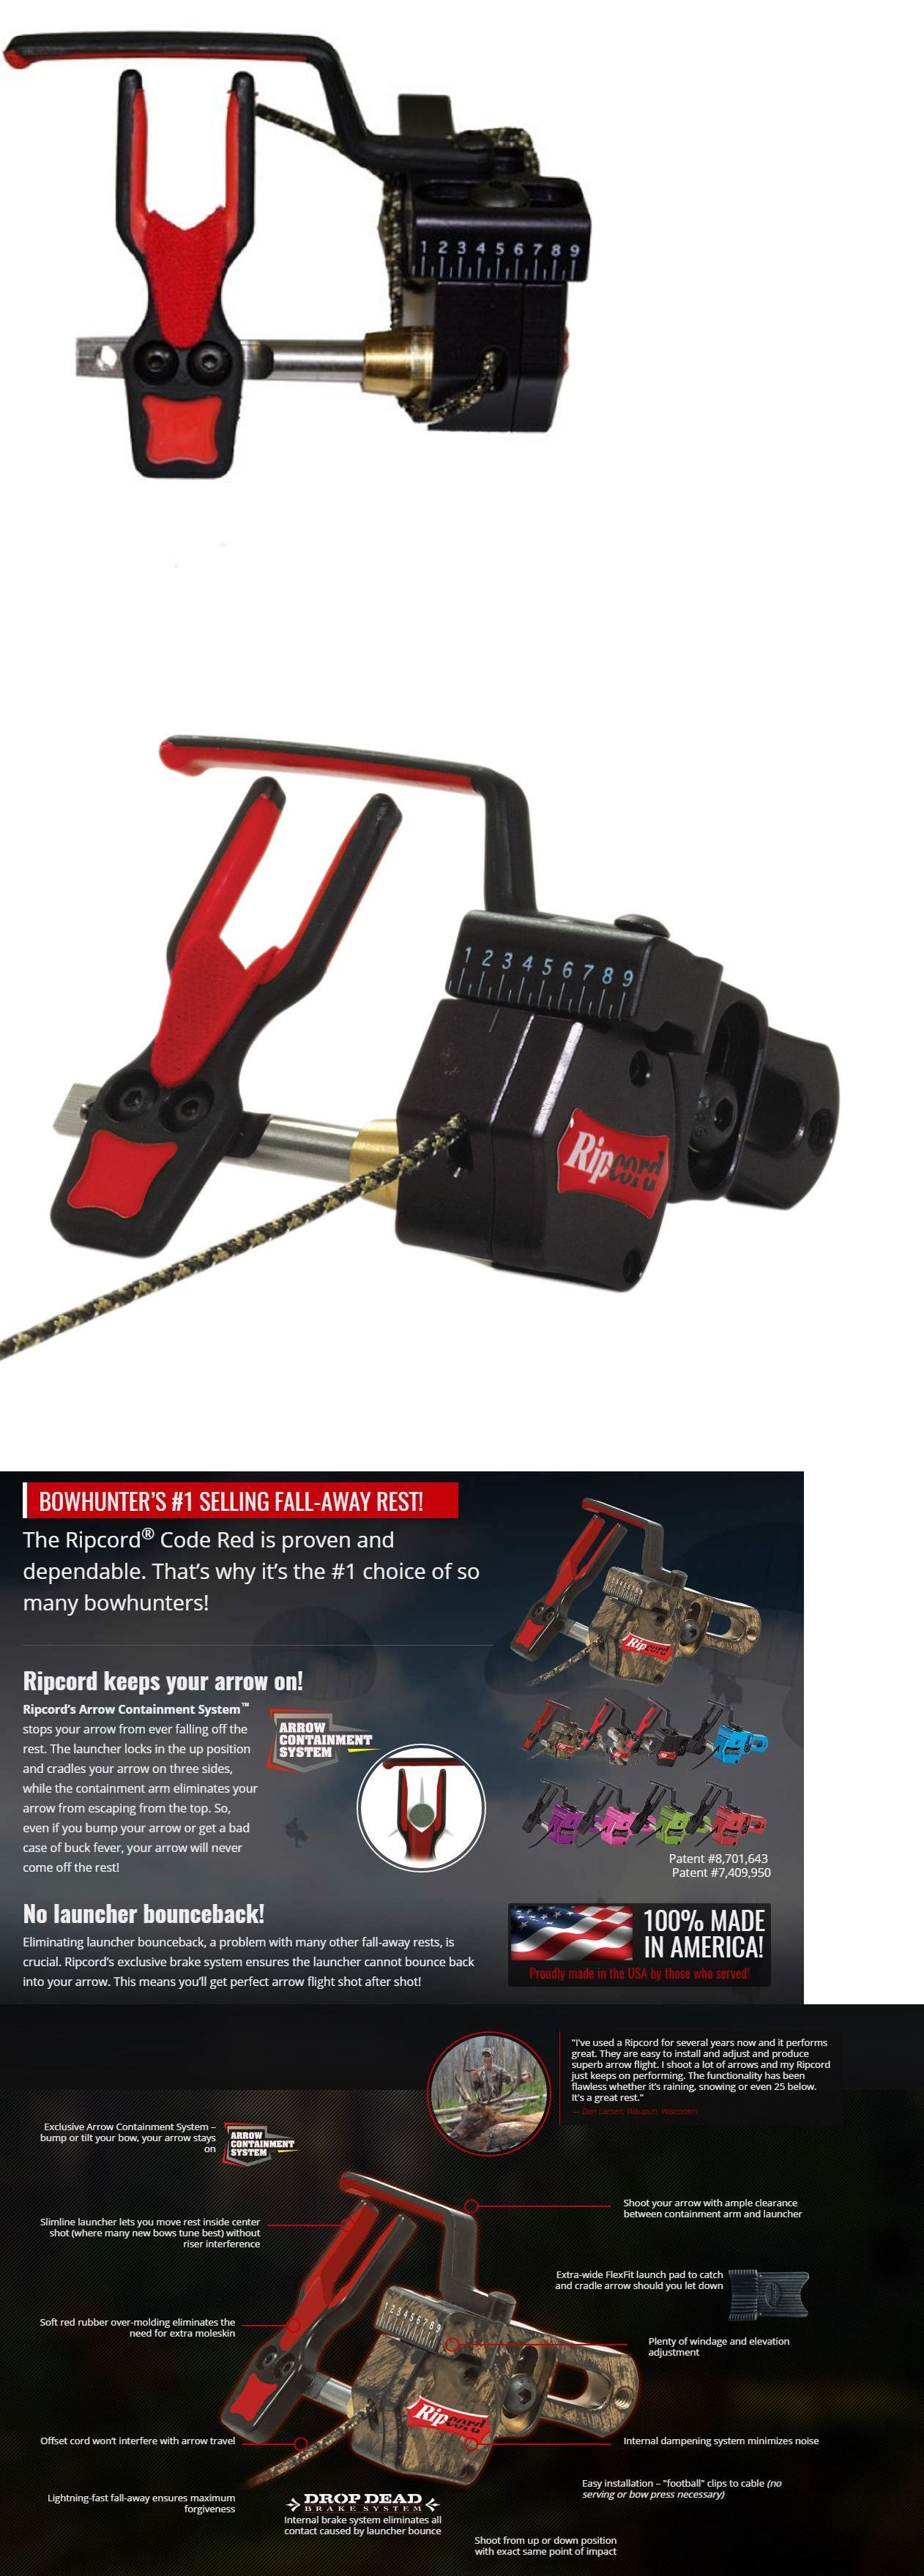 Outdoor Sports Ripcord Fall Away Rest Rh Red